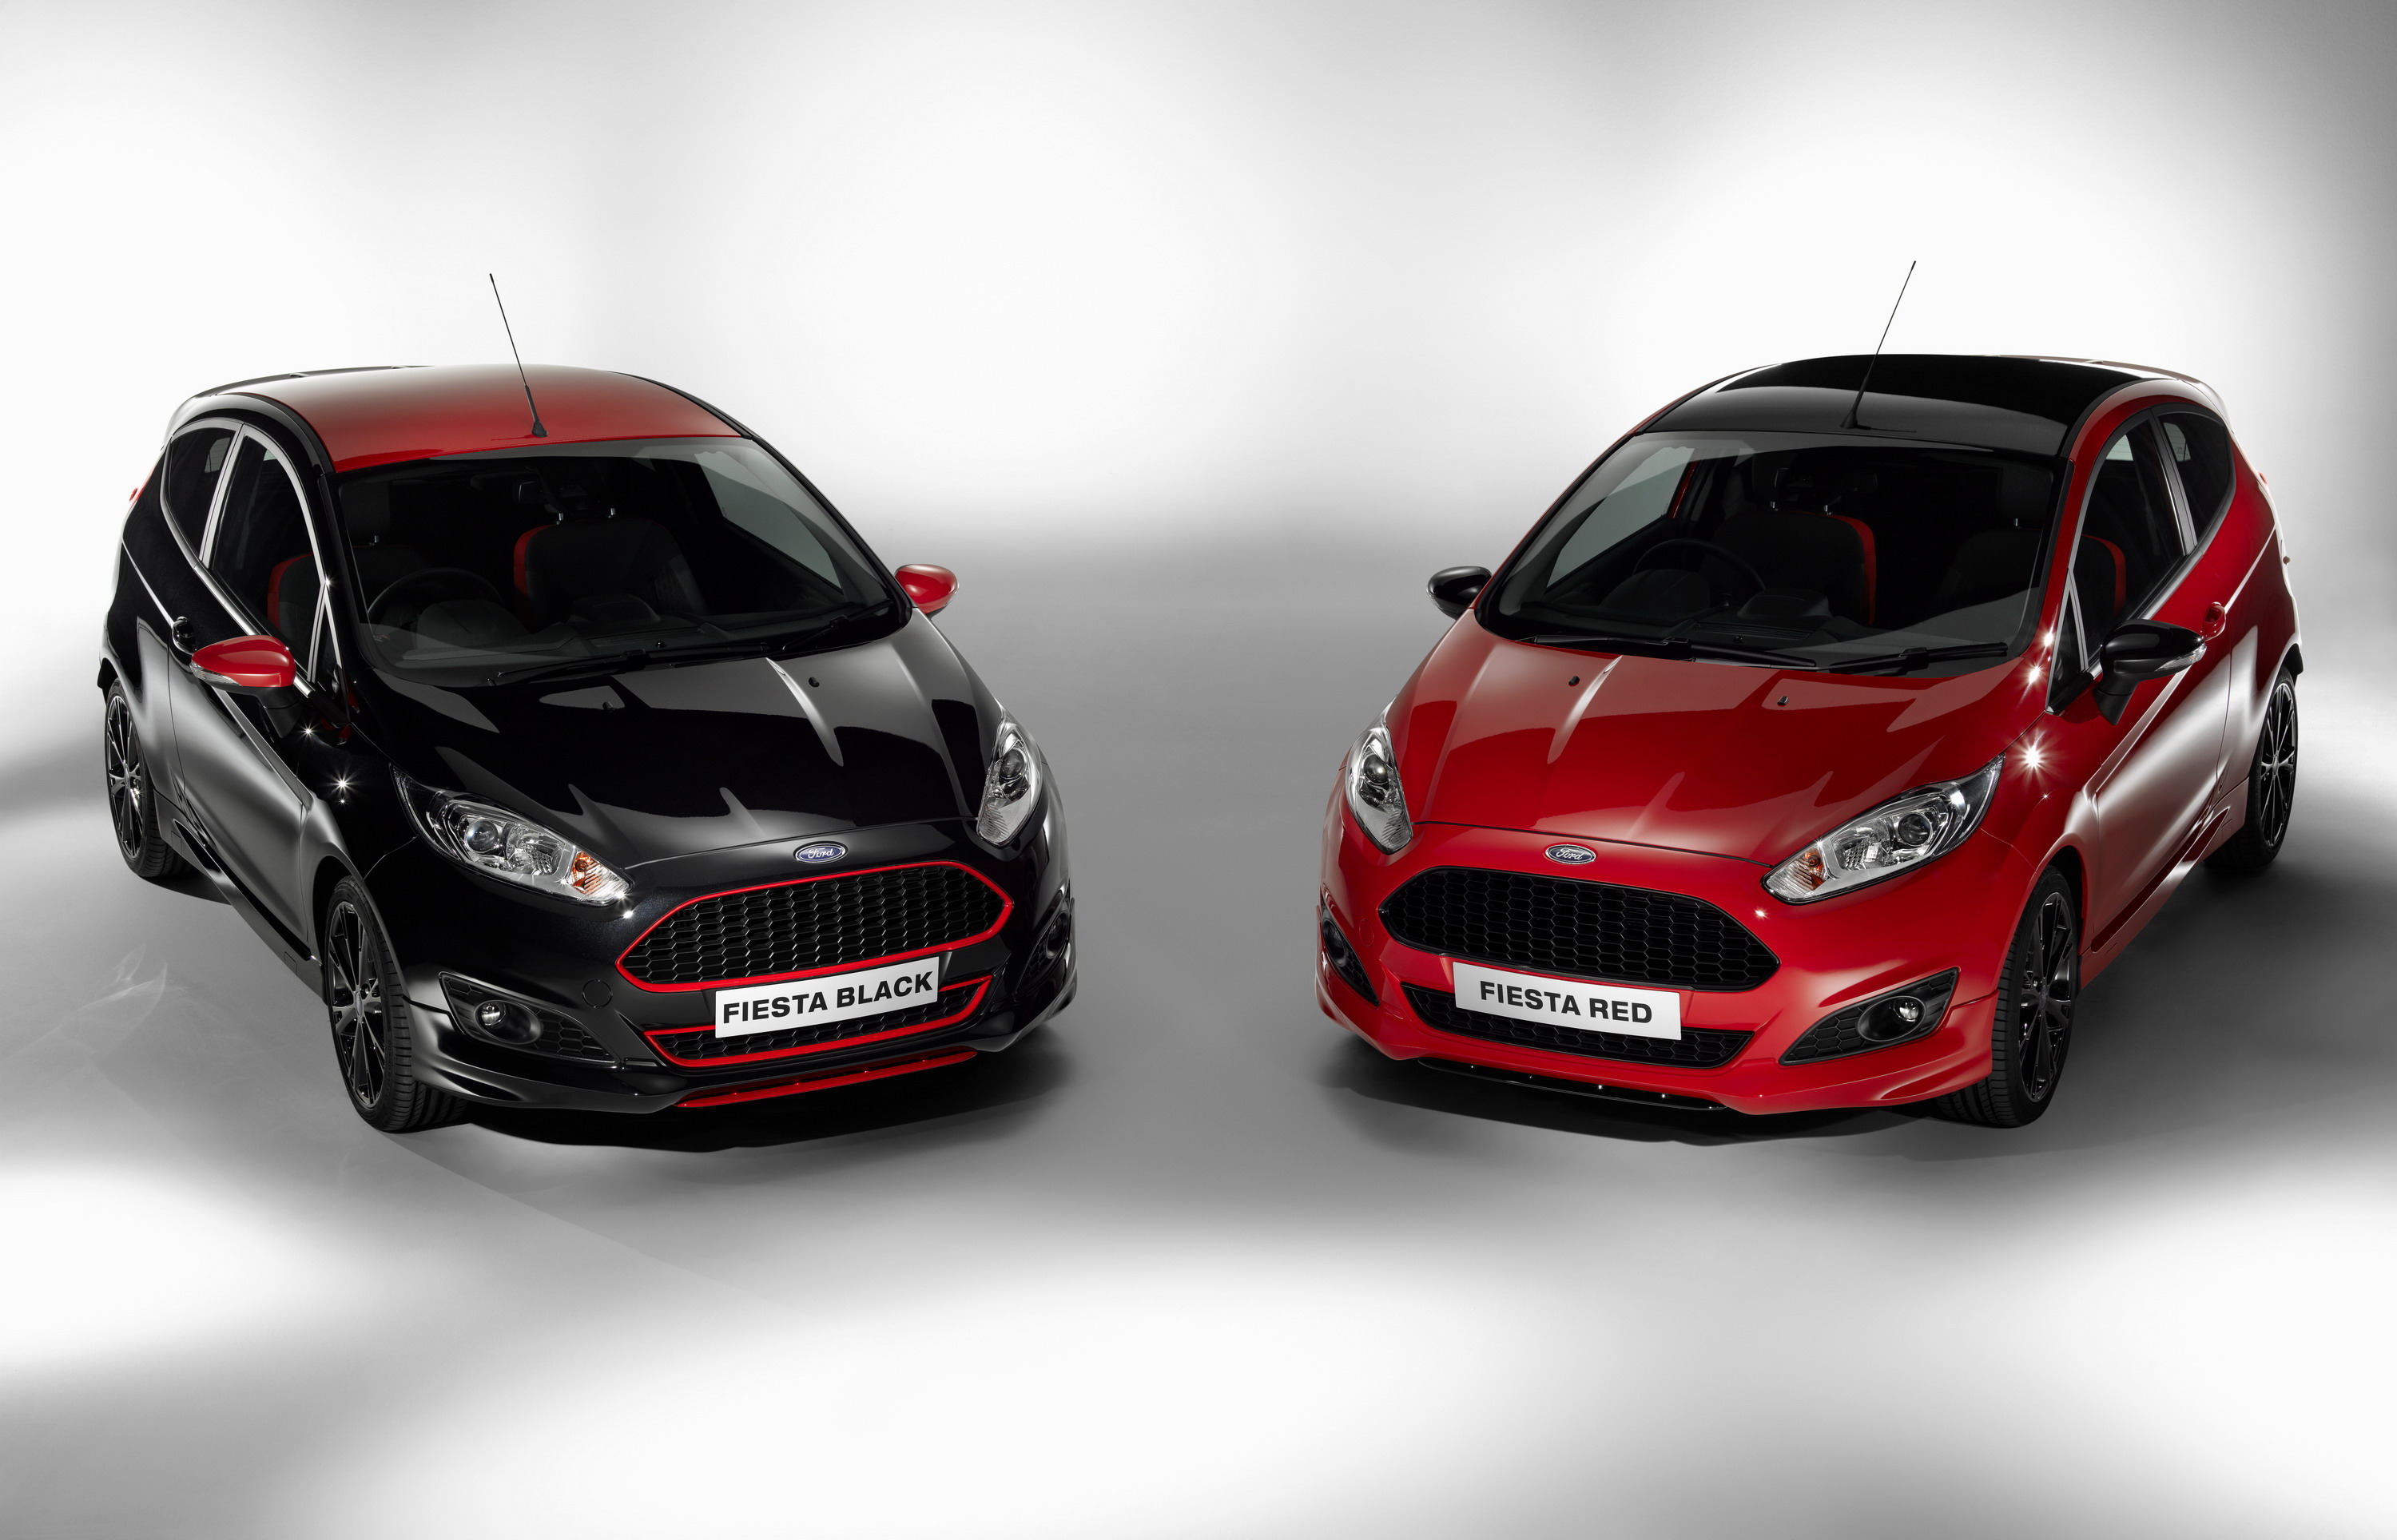 2014 ford fiesta black and red edition review top speed. Black Bedroom Furniture Sets. Home Design Ideas